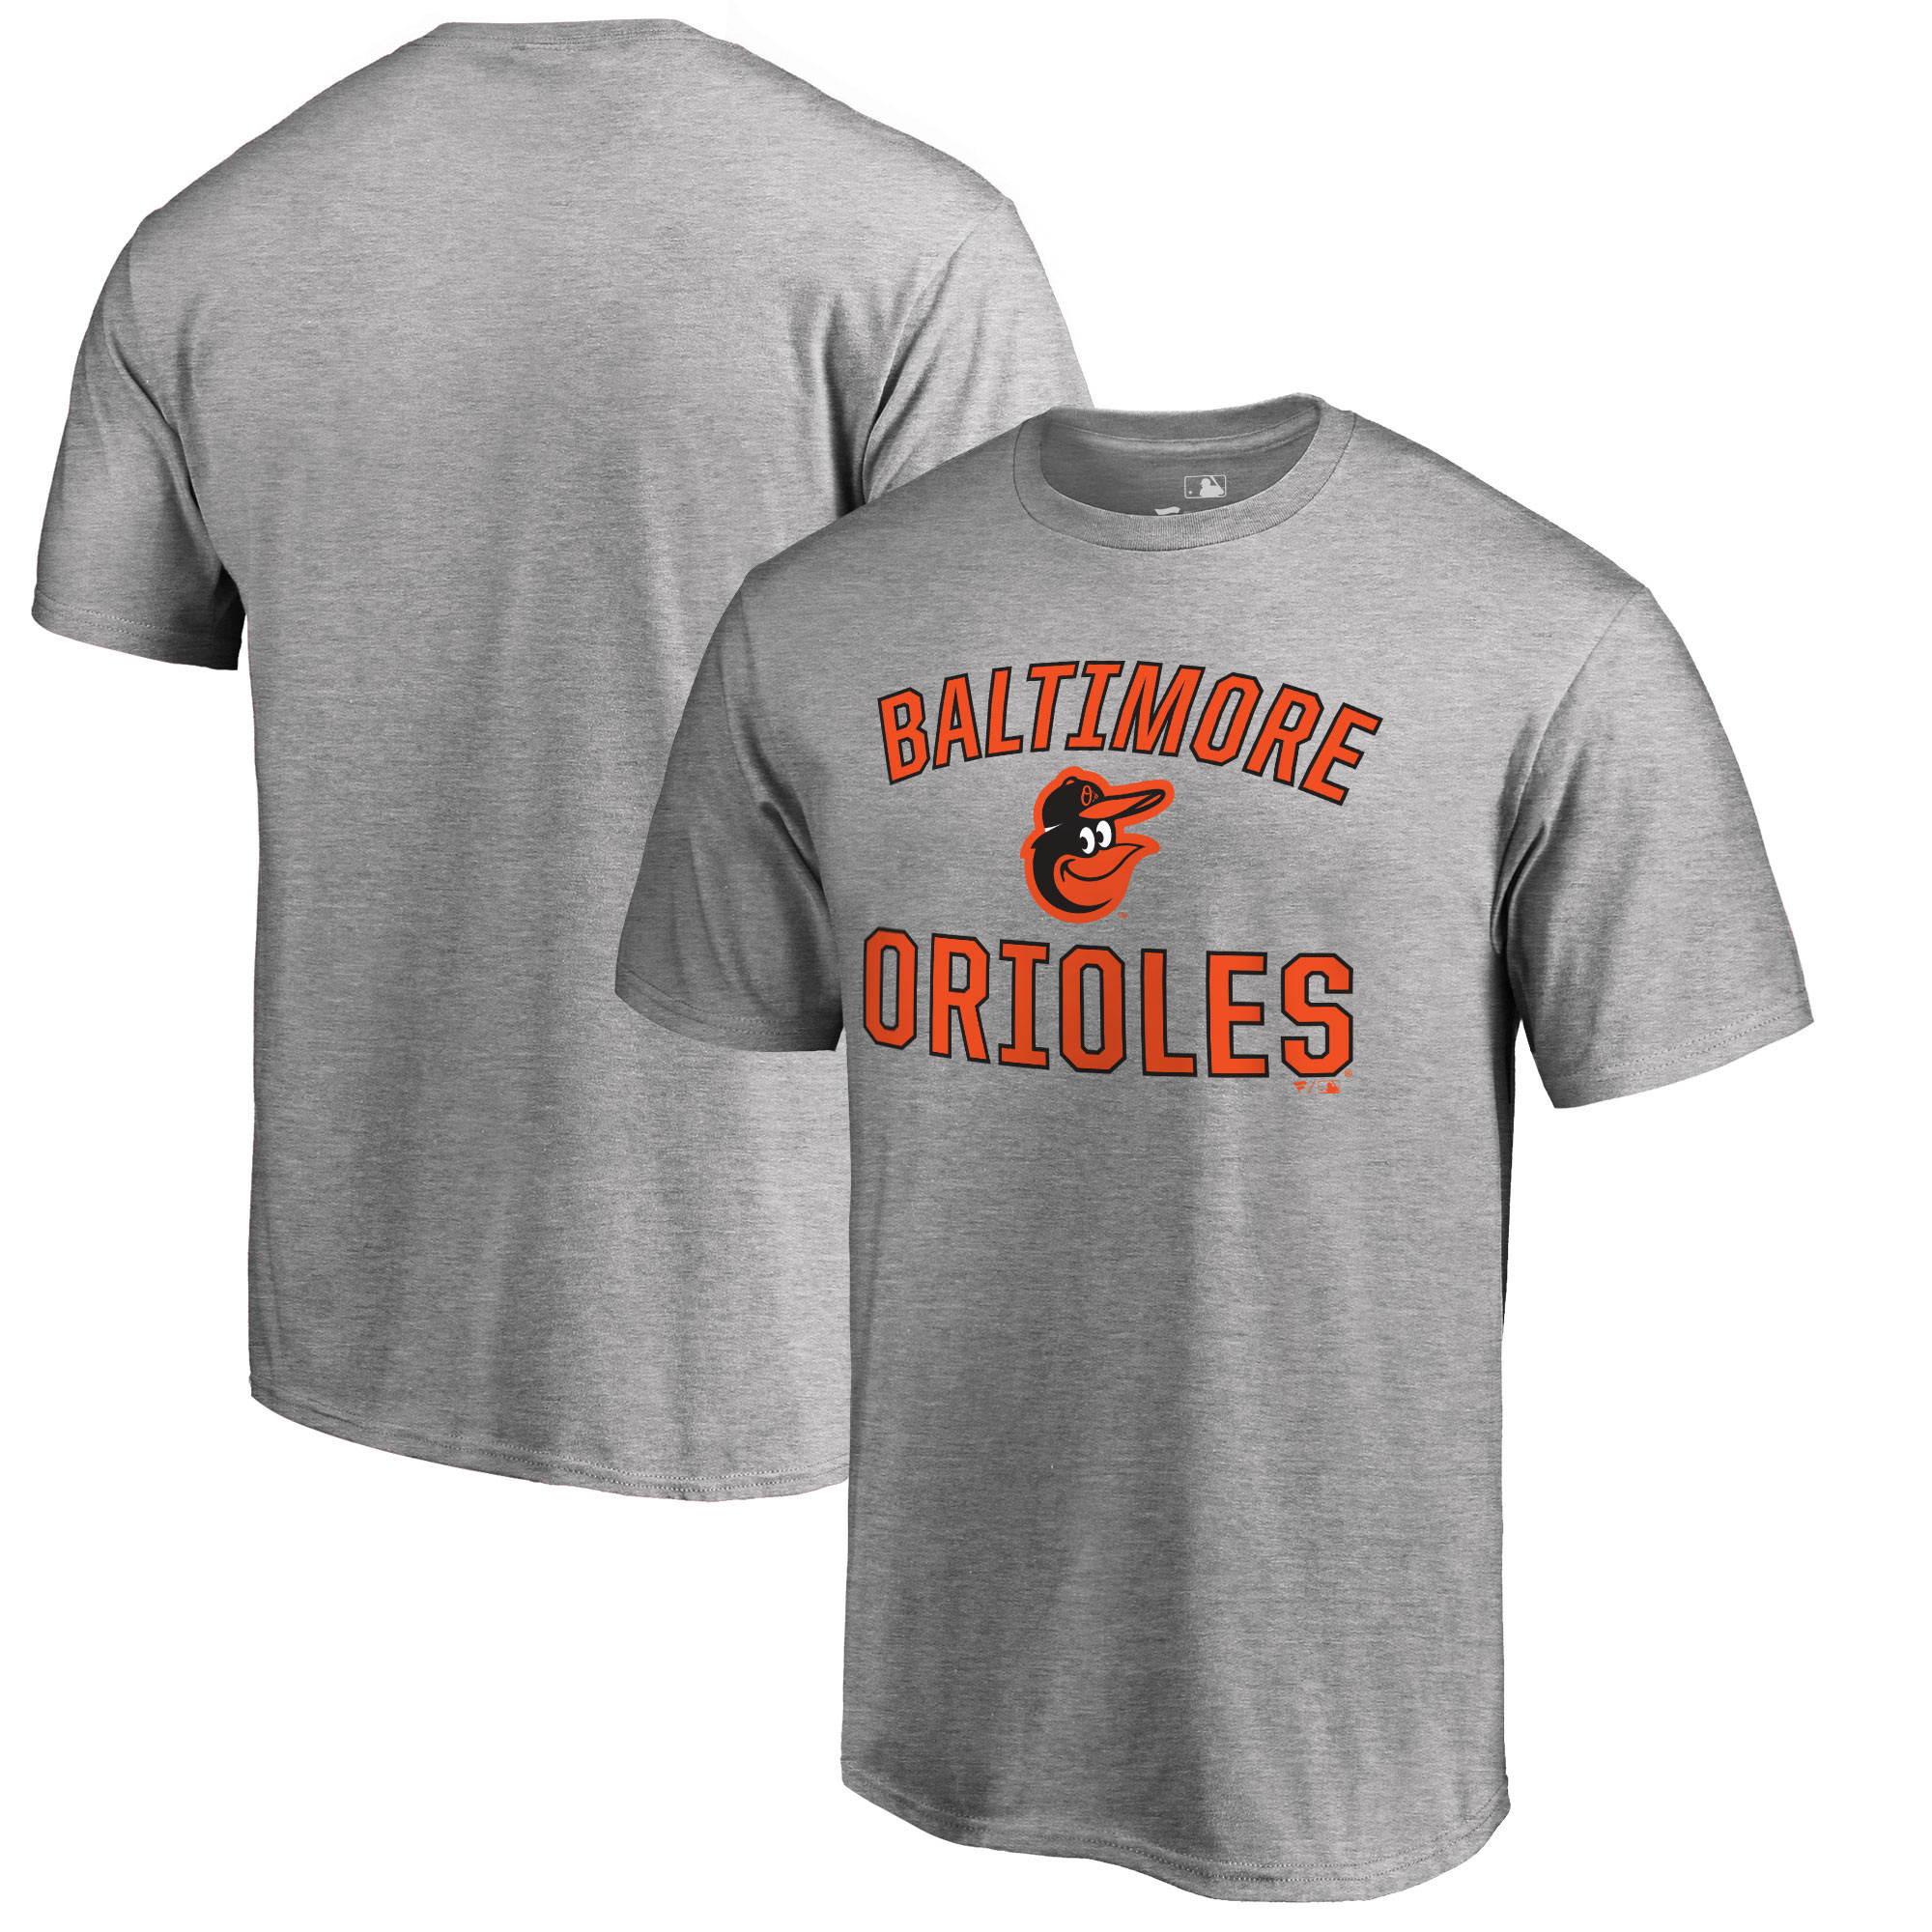 Baltimore Orioles Fanatics Branded Victory Arch T-Shirt - Heathered Gray